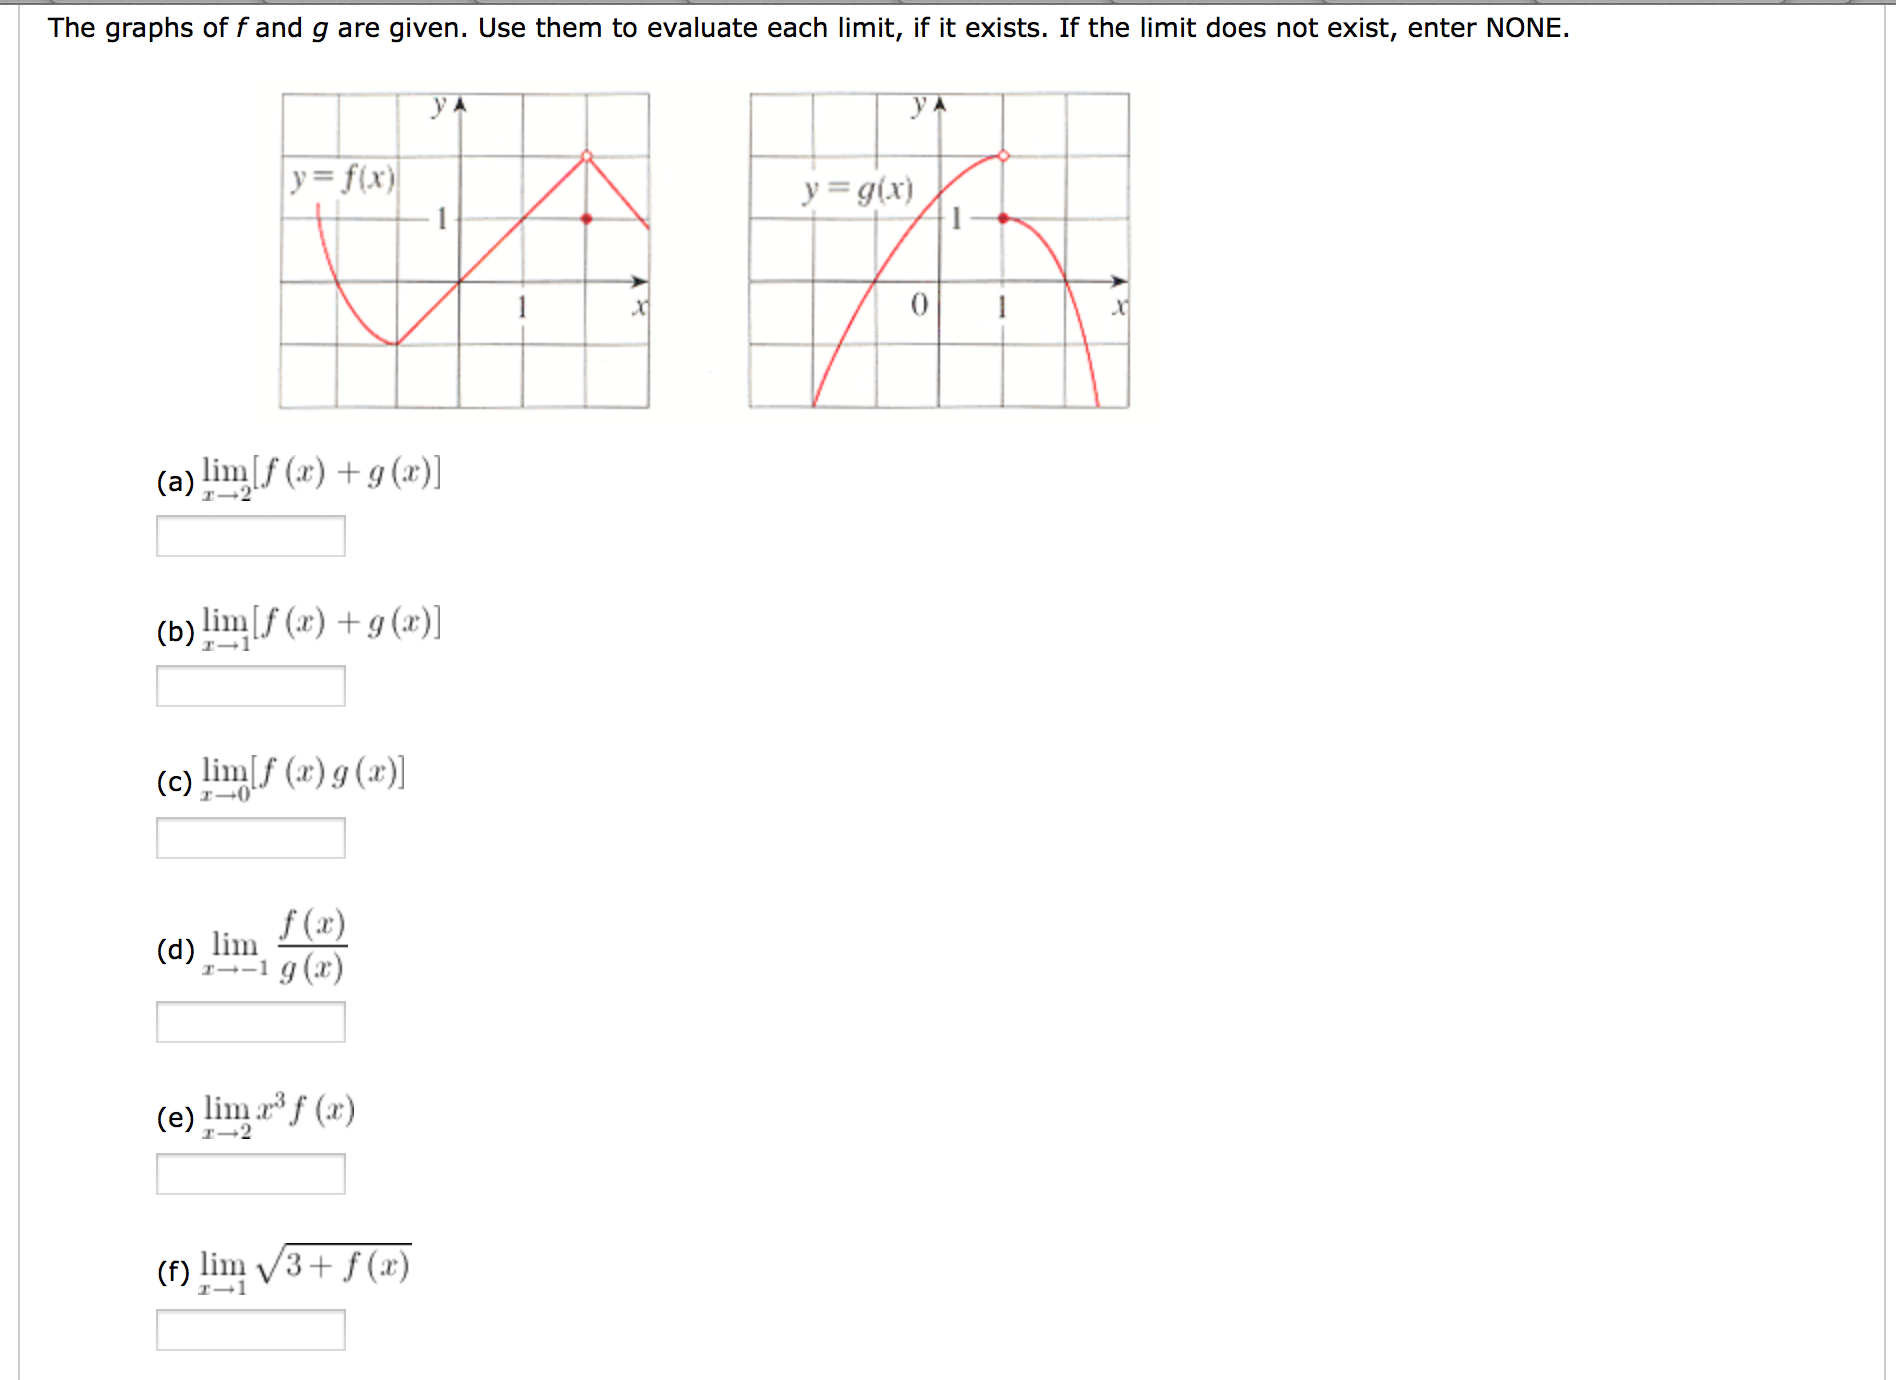 Question: The graphs of f and g are given. Use them to evaluate each limit, if it exists. If the limit does.